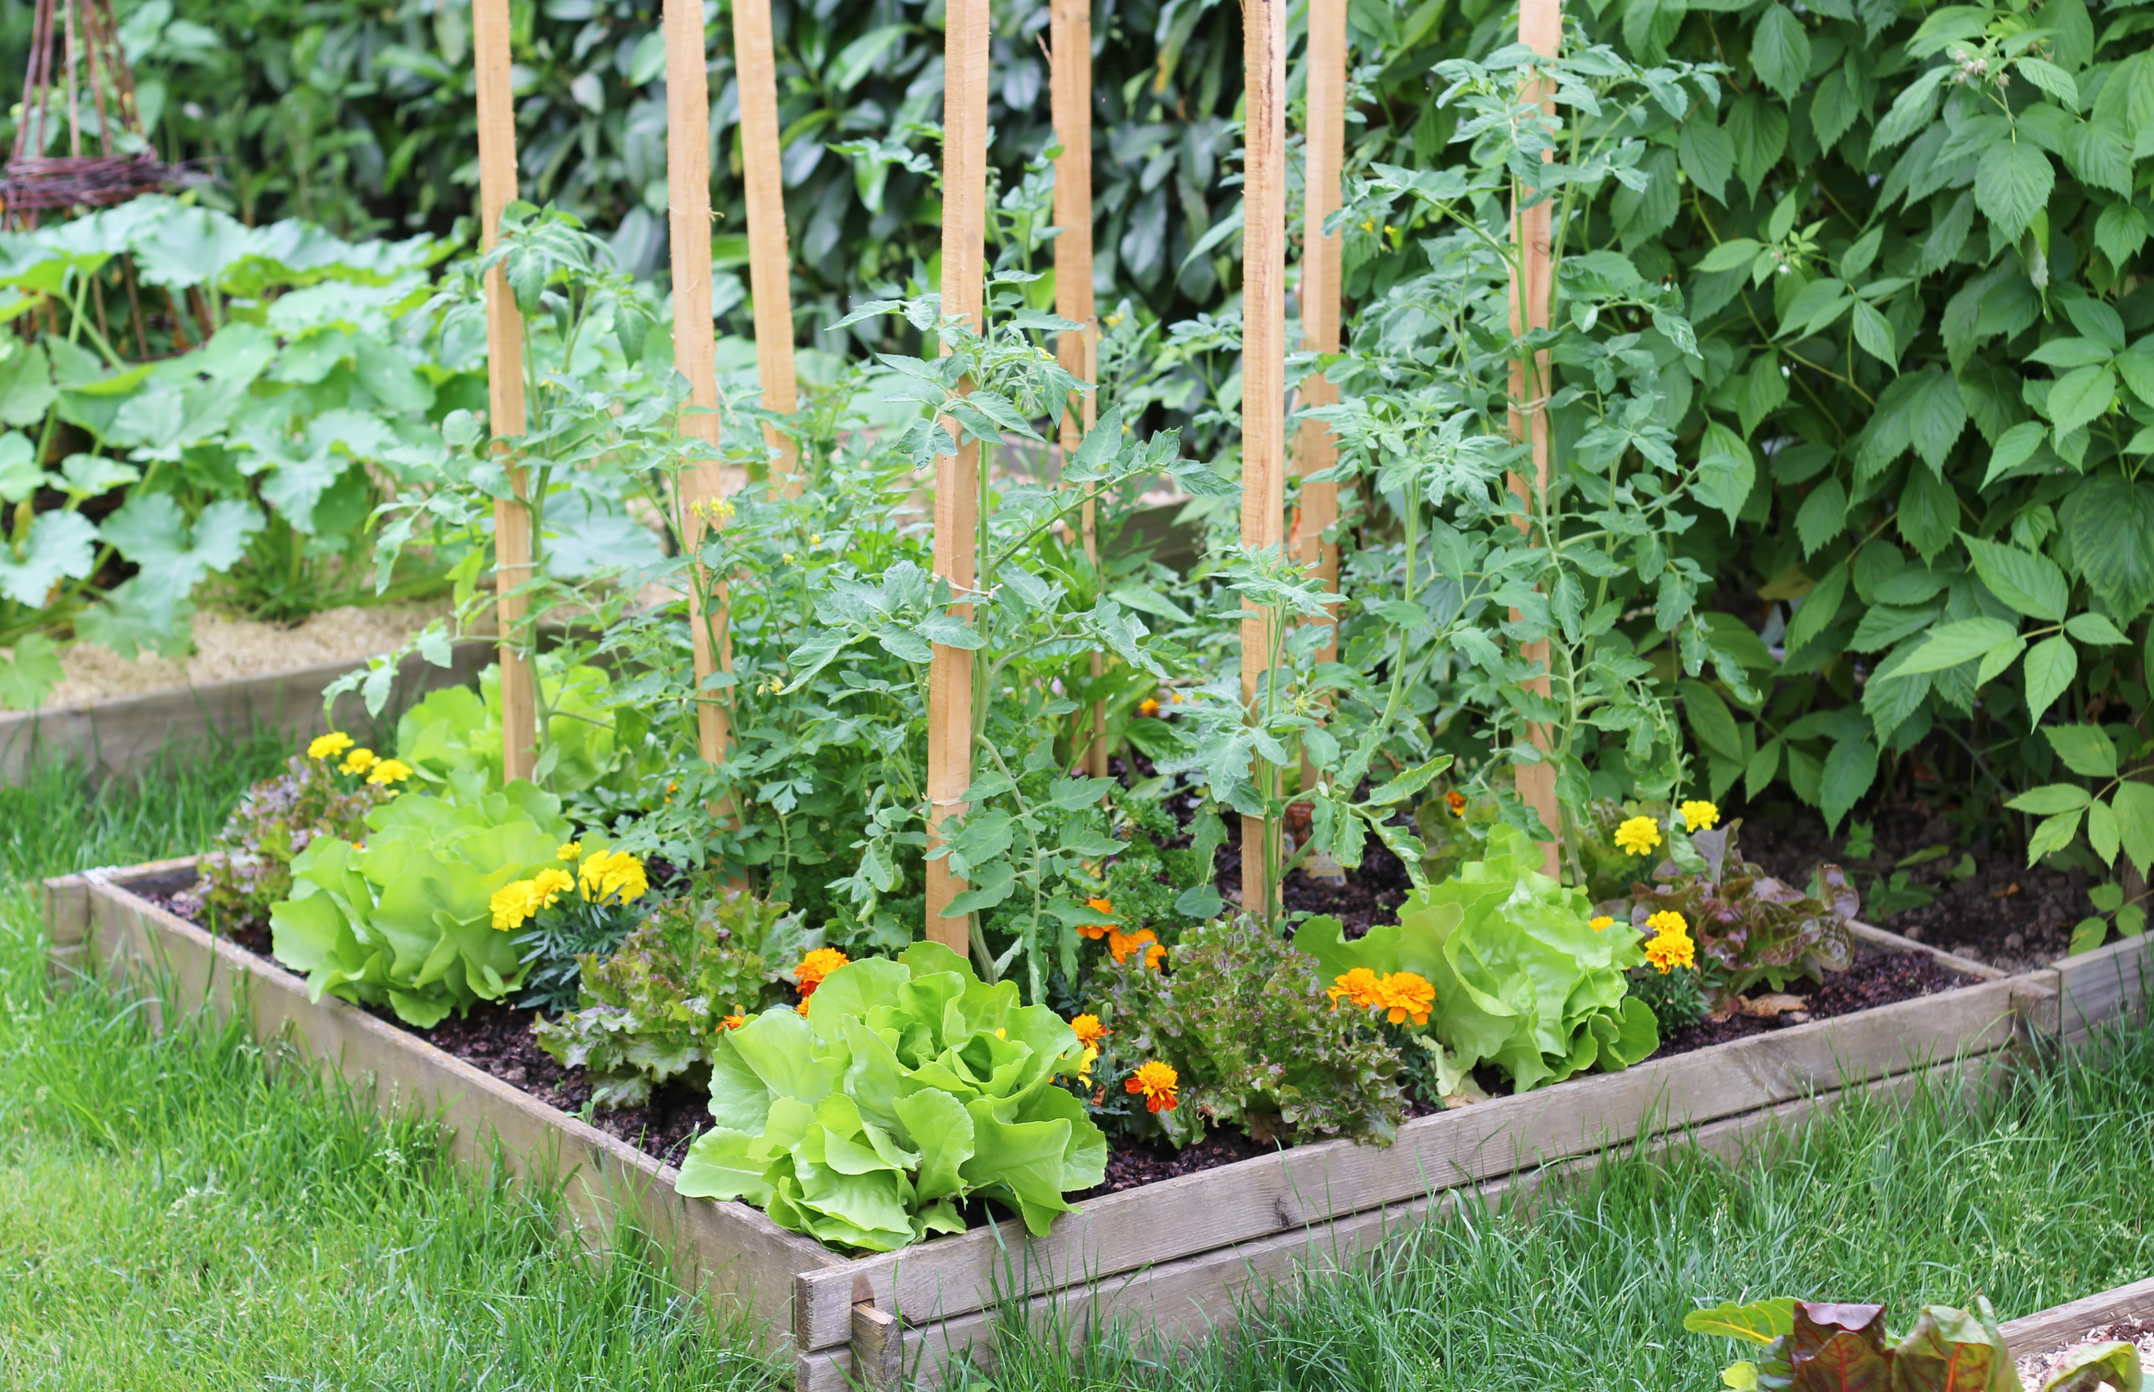 There are many benefits to companion planting